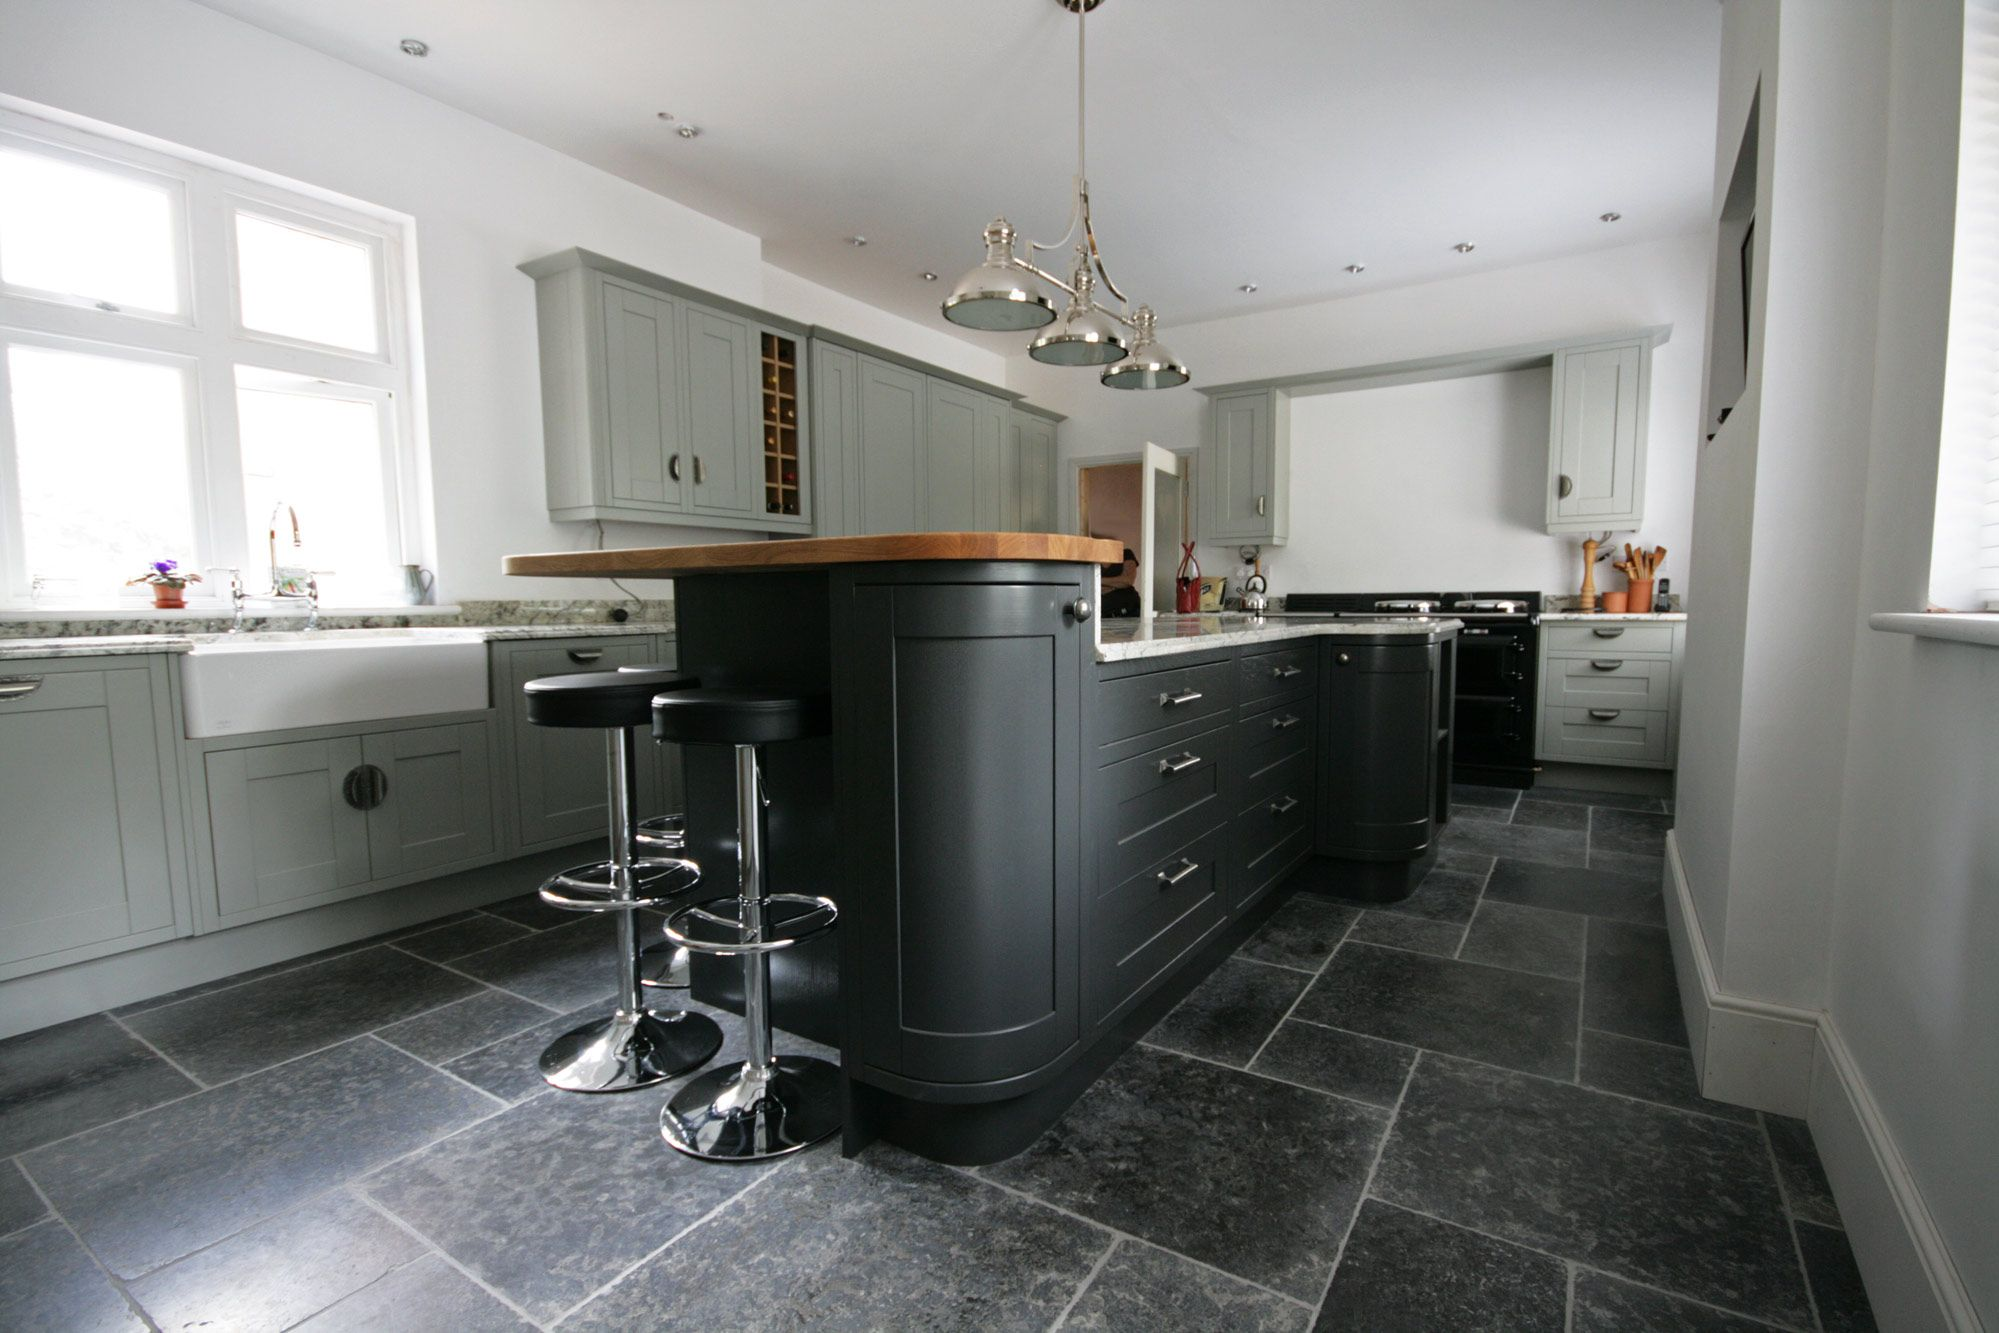 Picture of kitchen millstone limestone flooring tiles lovely millstone tumbled limestone available in large and small sizes for floor tiles order your free sample of millstone tumbled limestone tiles today dailygadgetfo Gallery